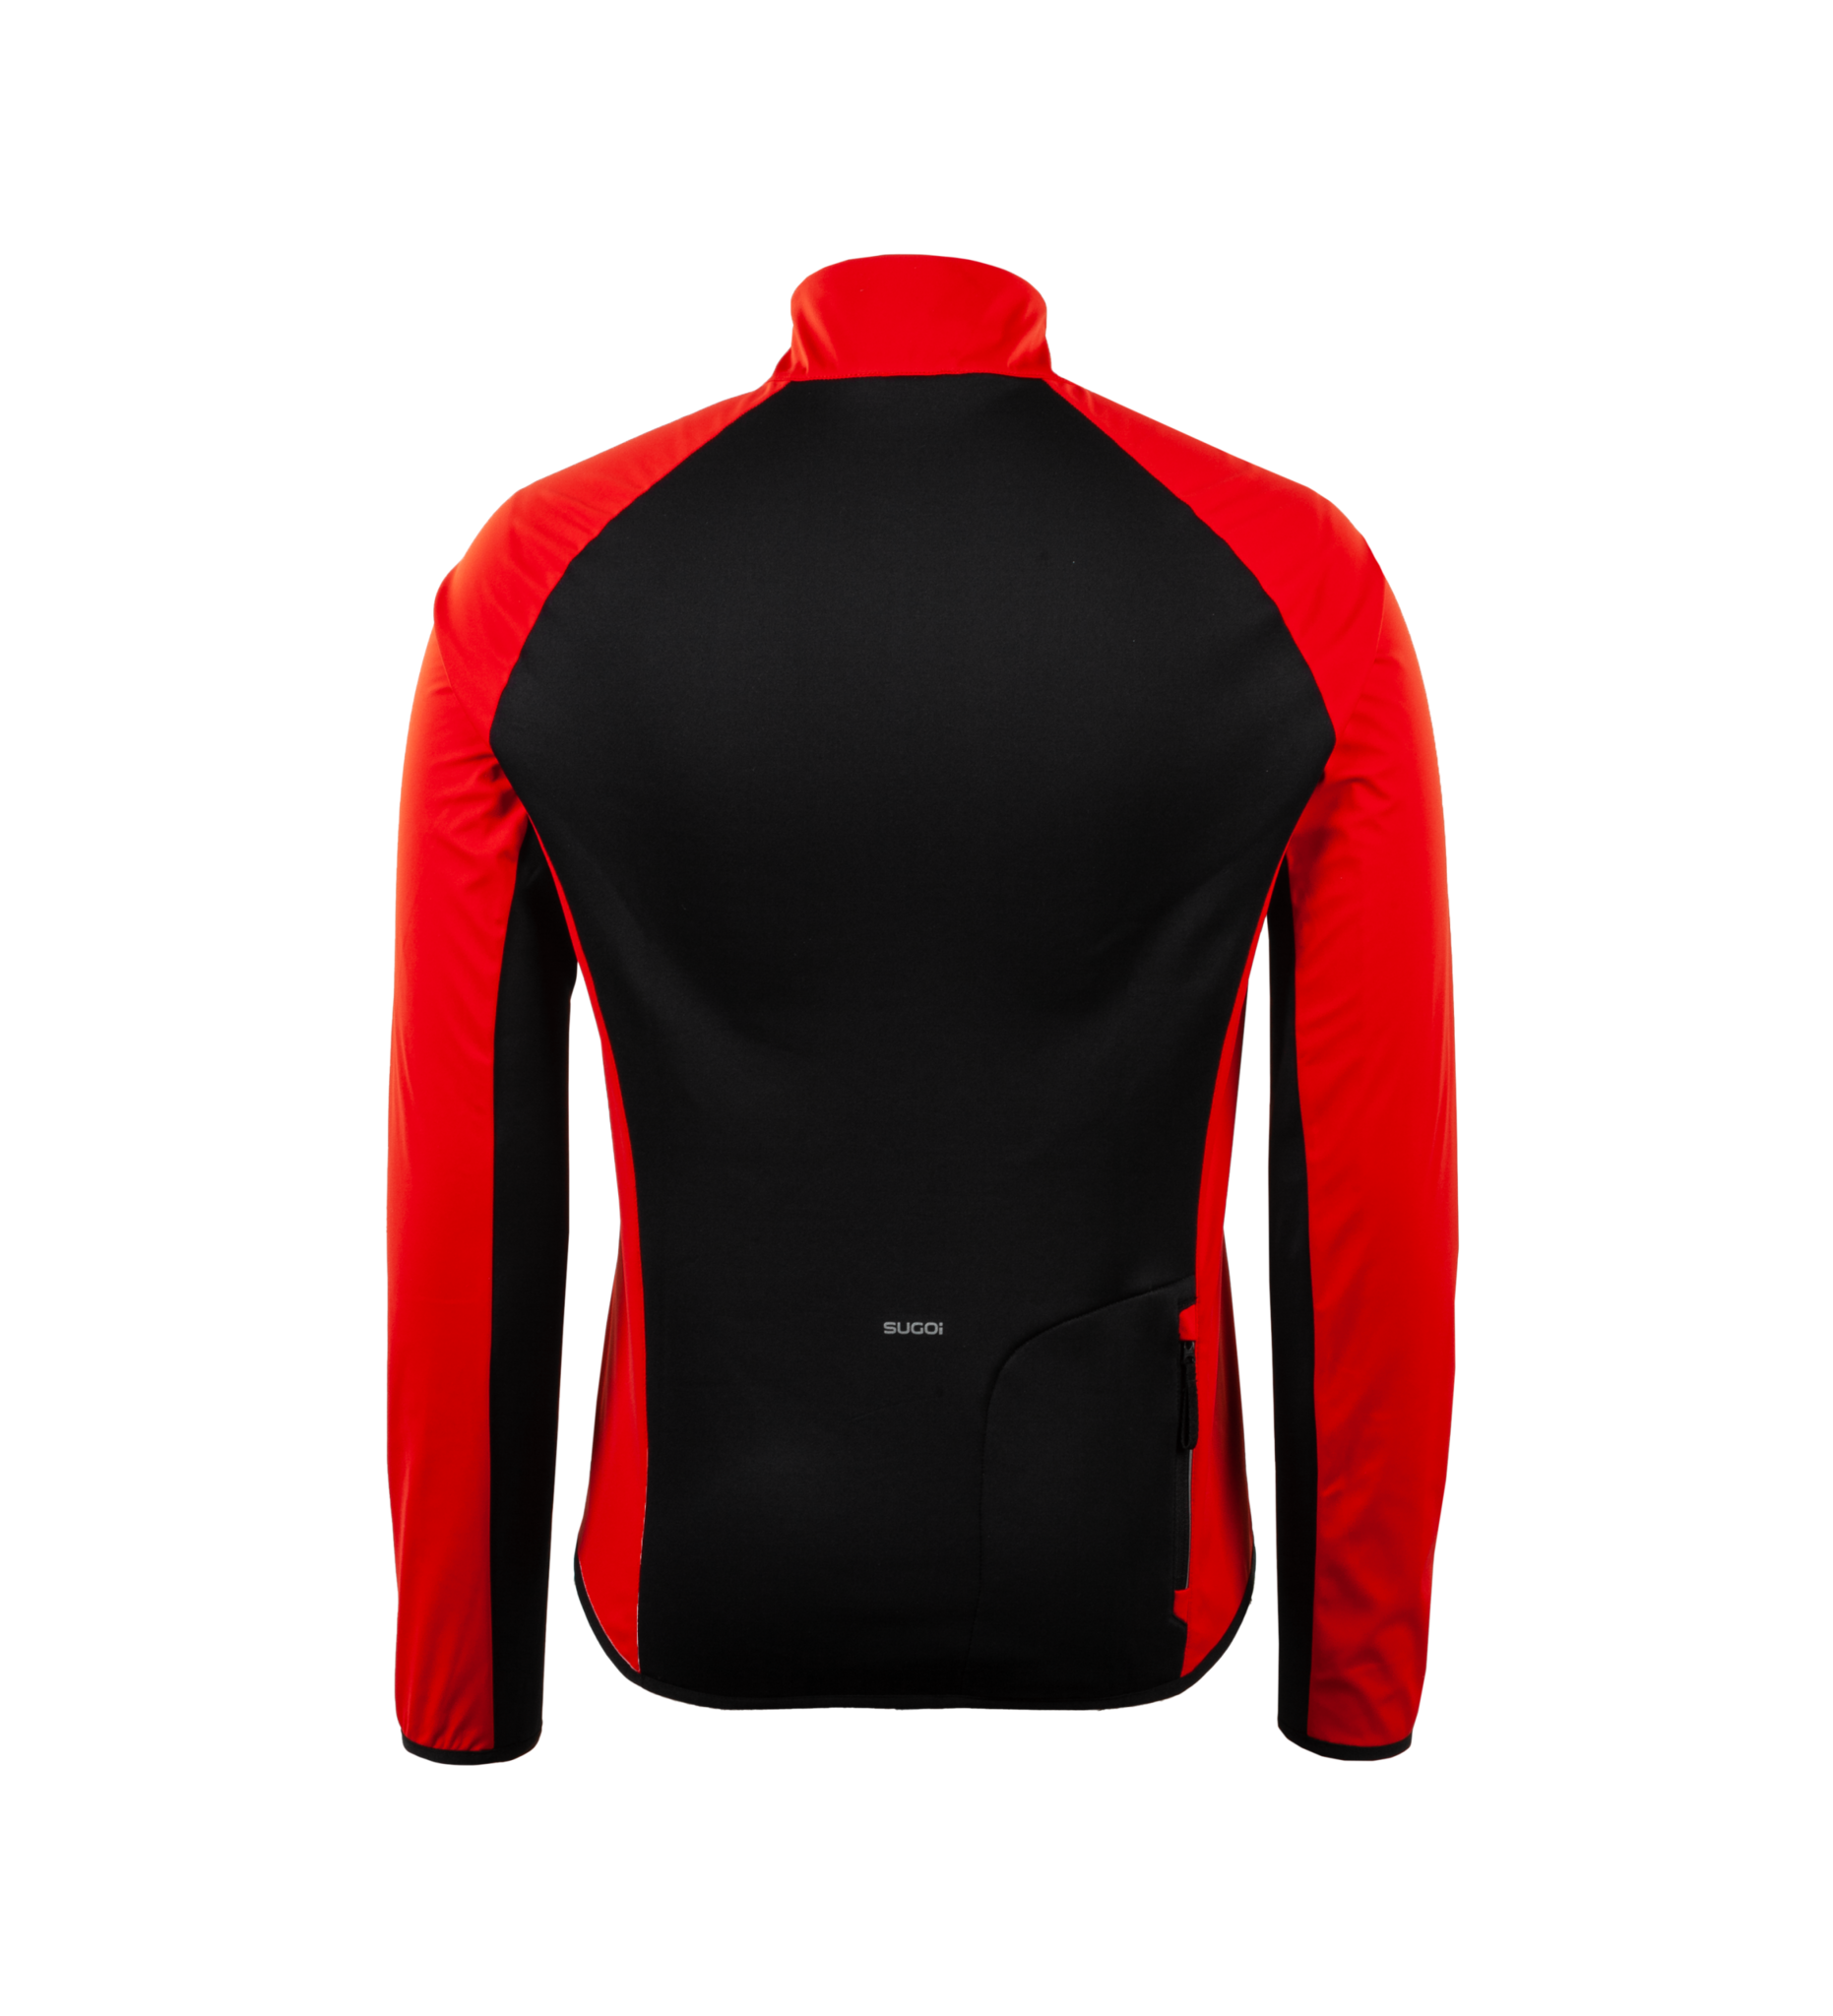 Sugoi Men's Firewall 180 Thermal Jacket